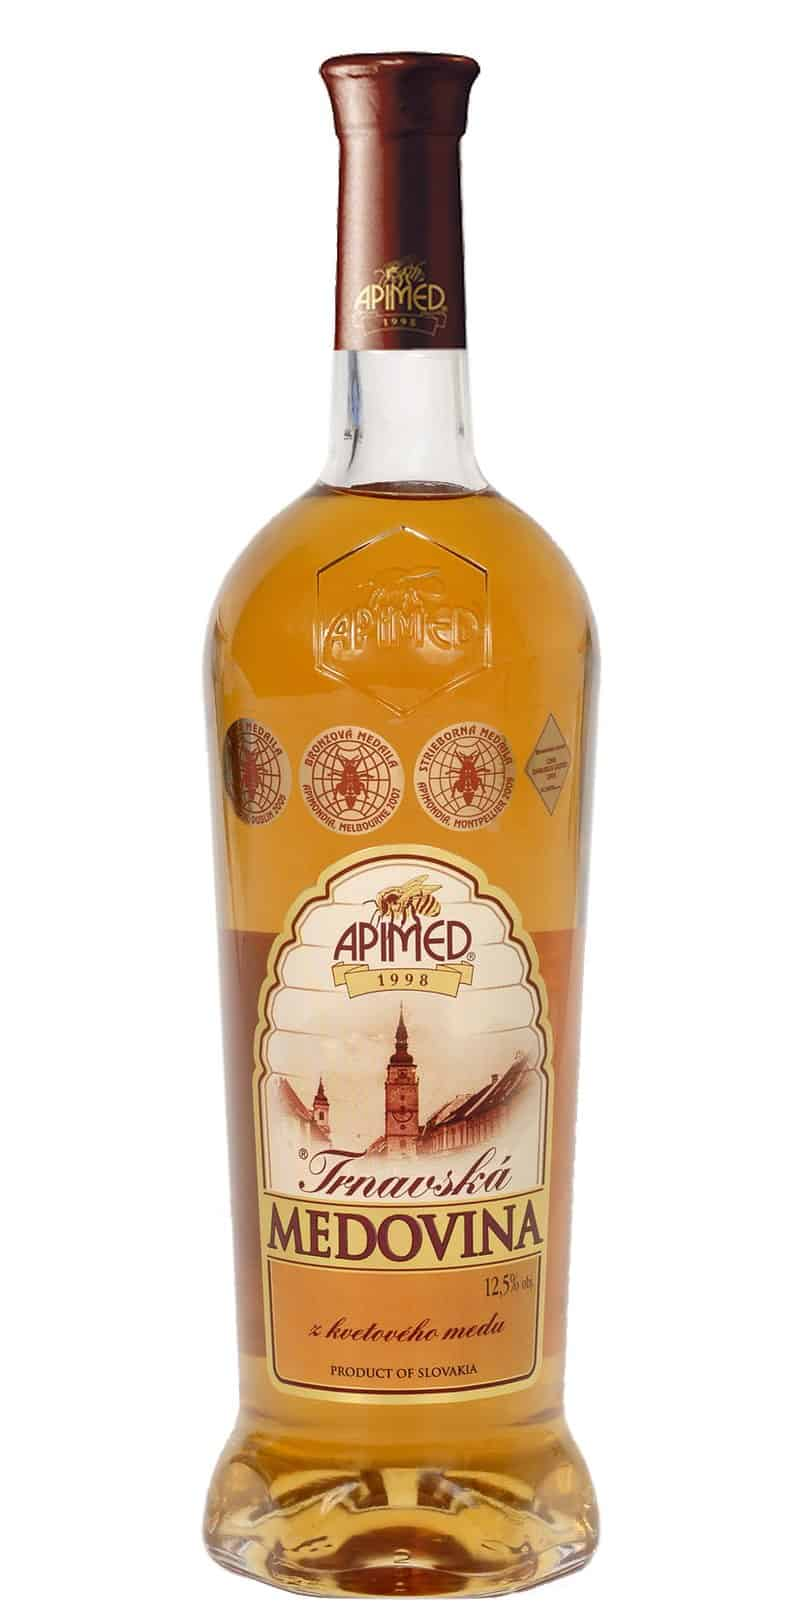 A bottle of Medovina infused with flowers, herbs and spice, brewed in the old Slavic style.